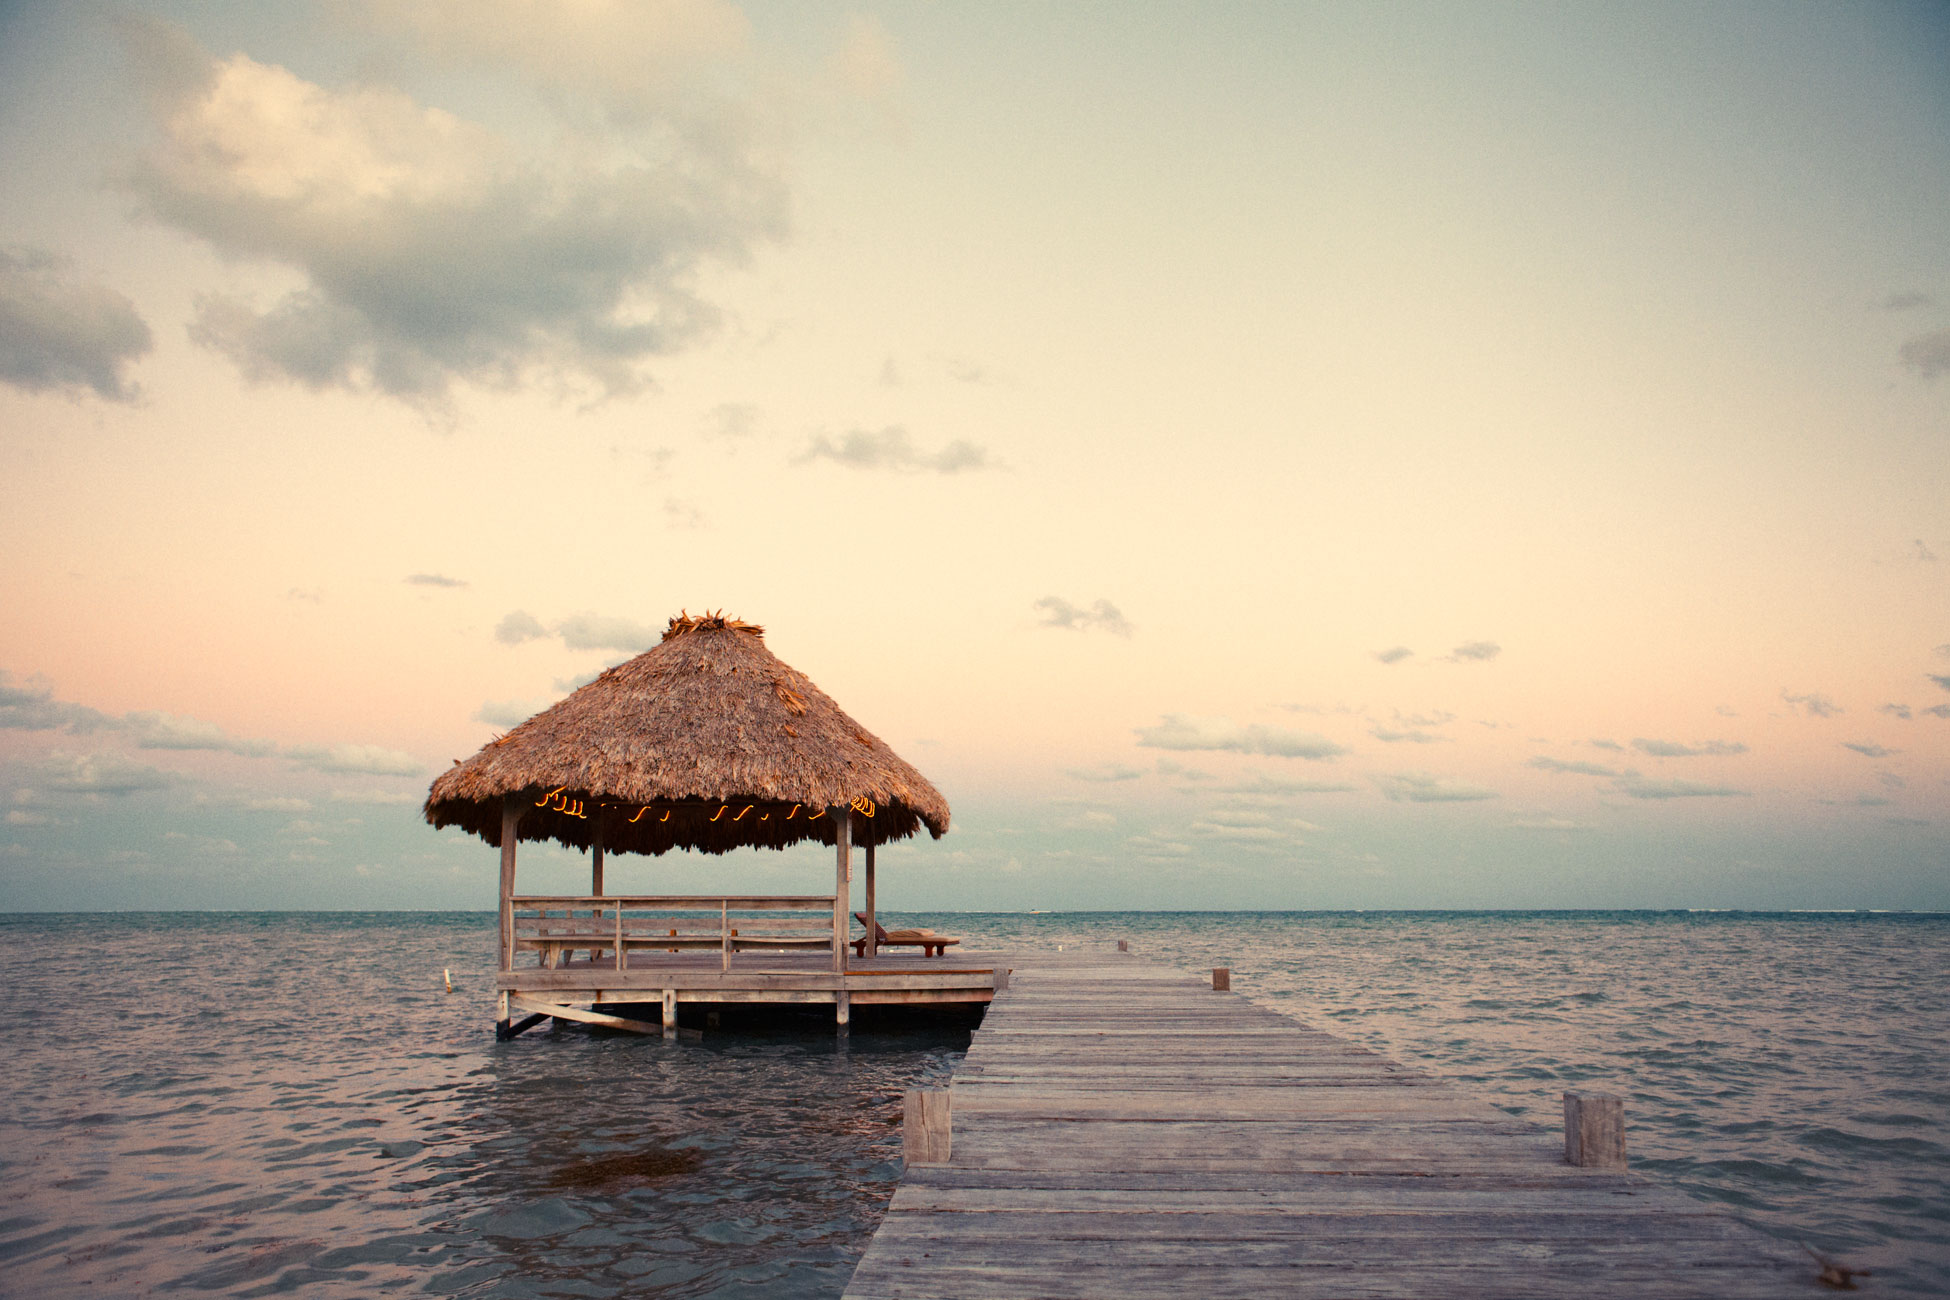 Belize_2013EDIT_005.jpg